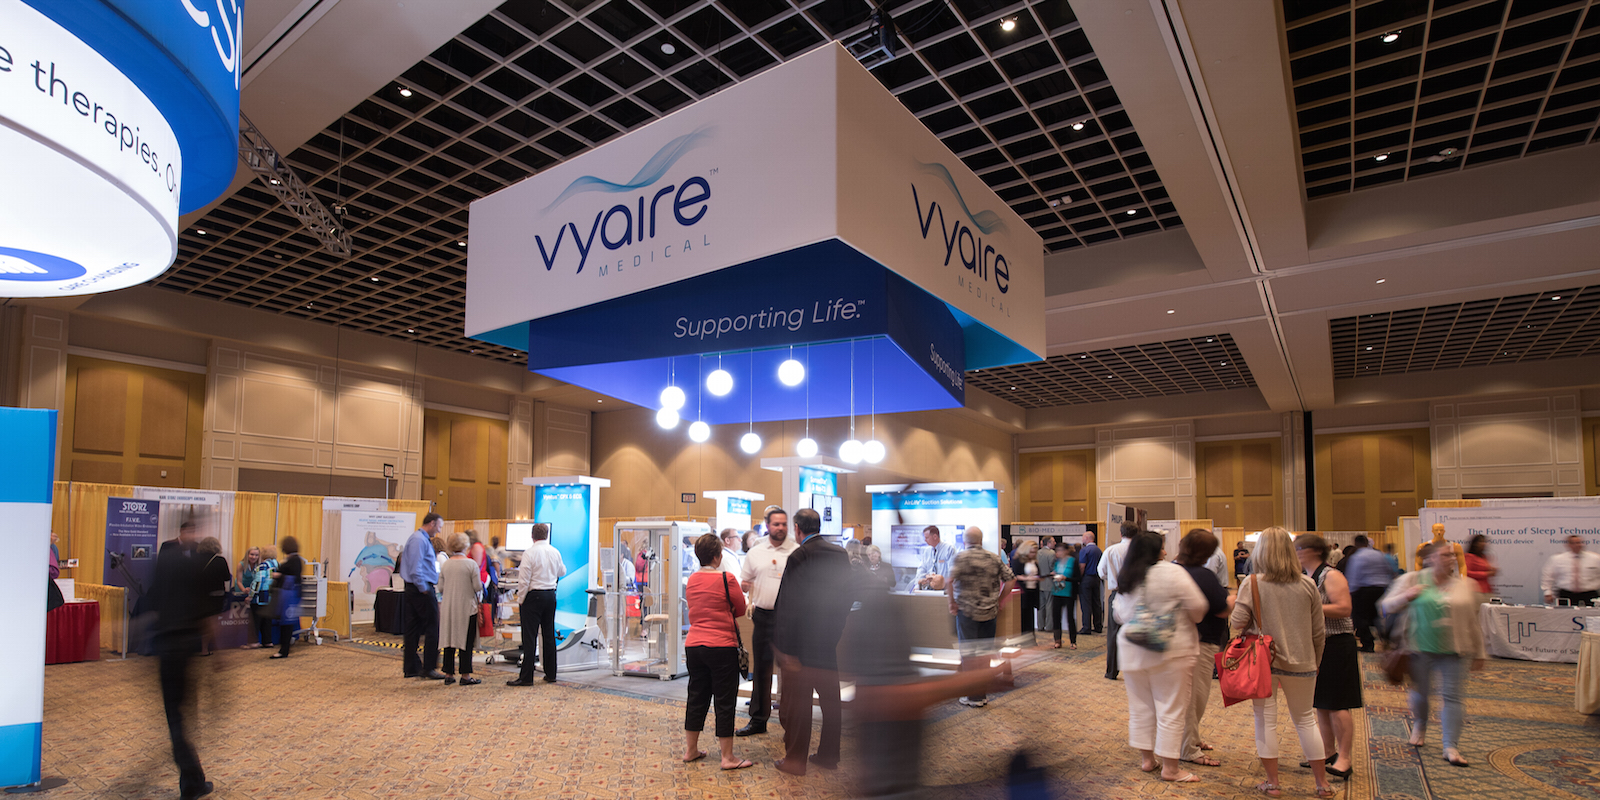 Star :: Vyaire Trade Show Exhibits